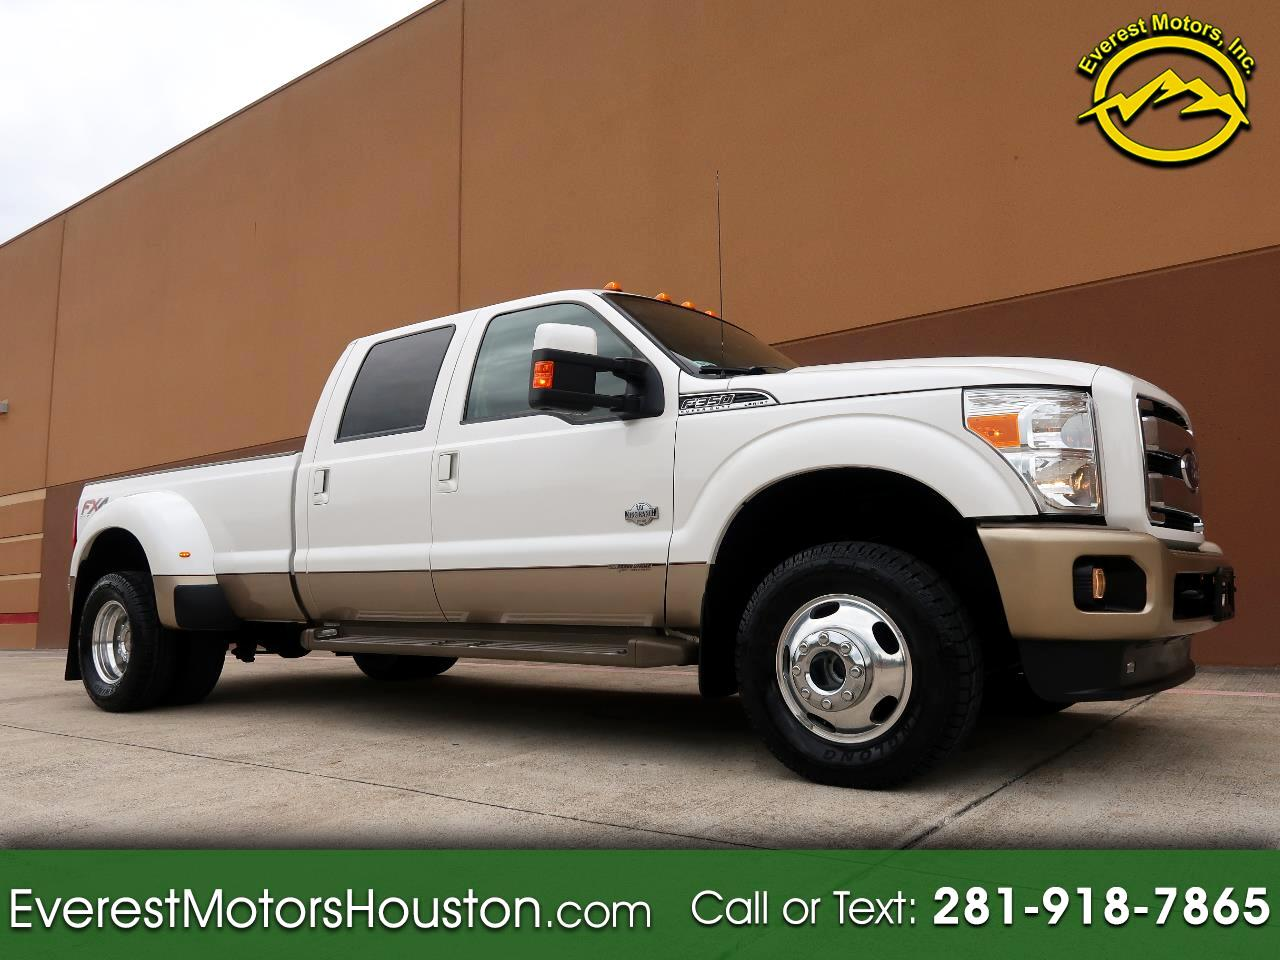 2014 Ford F-350 SD KING RANCH CREW CAB LONG BED 4WD LOADED